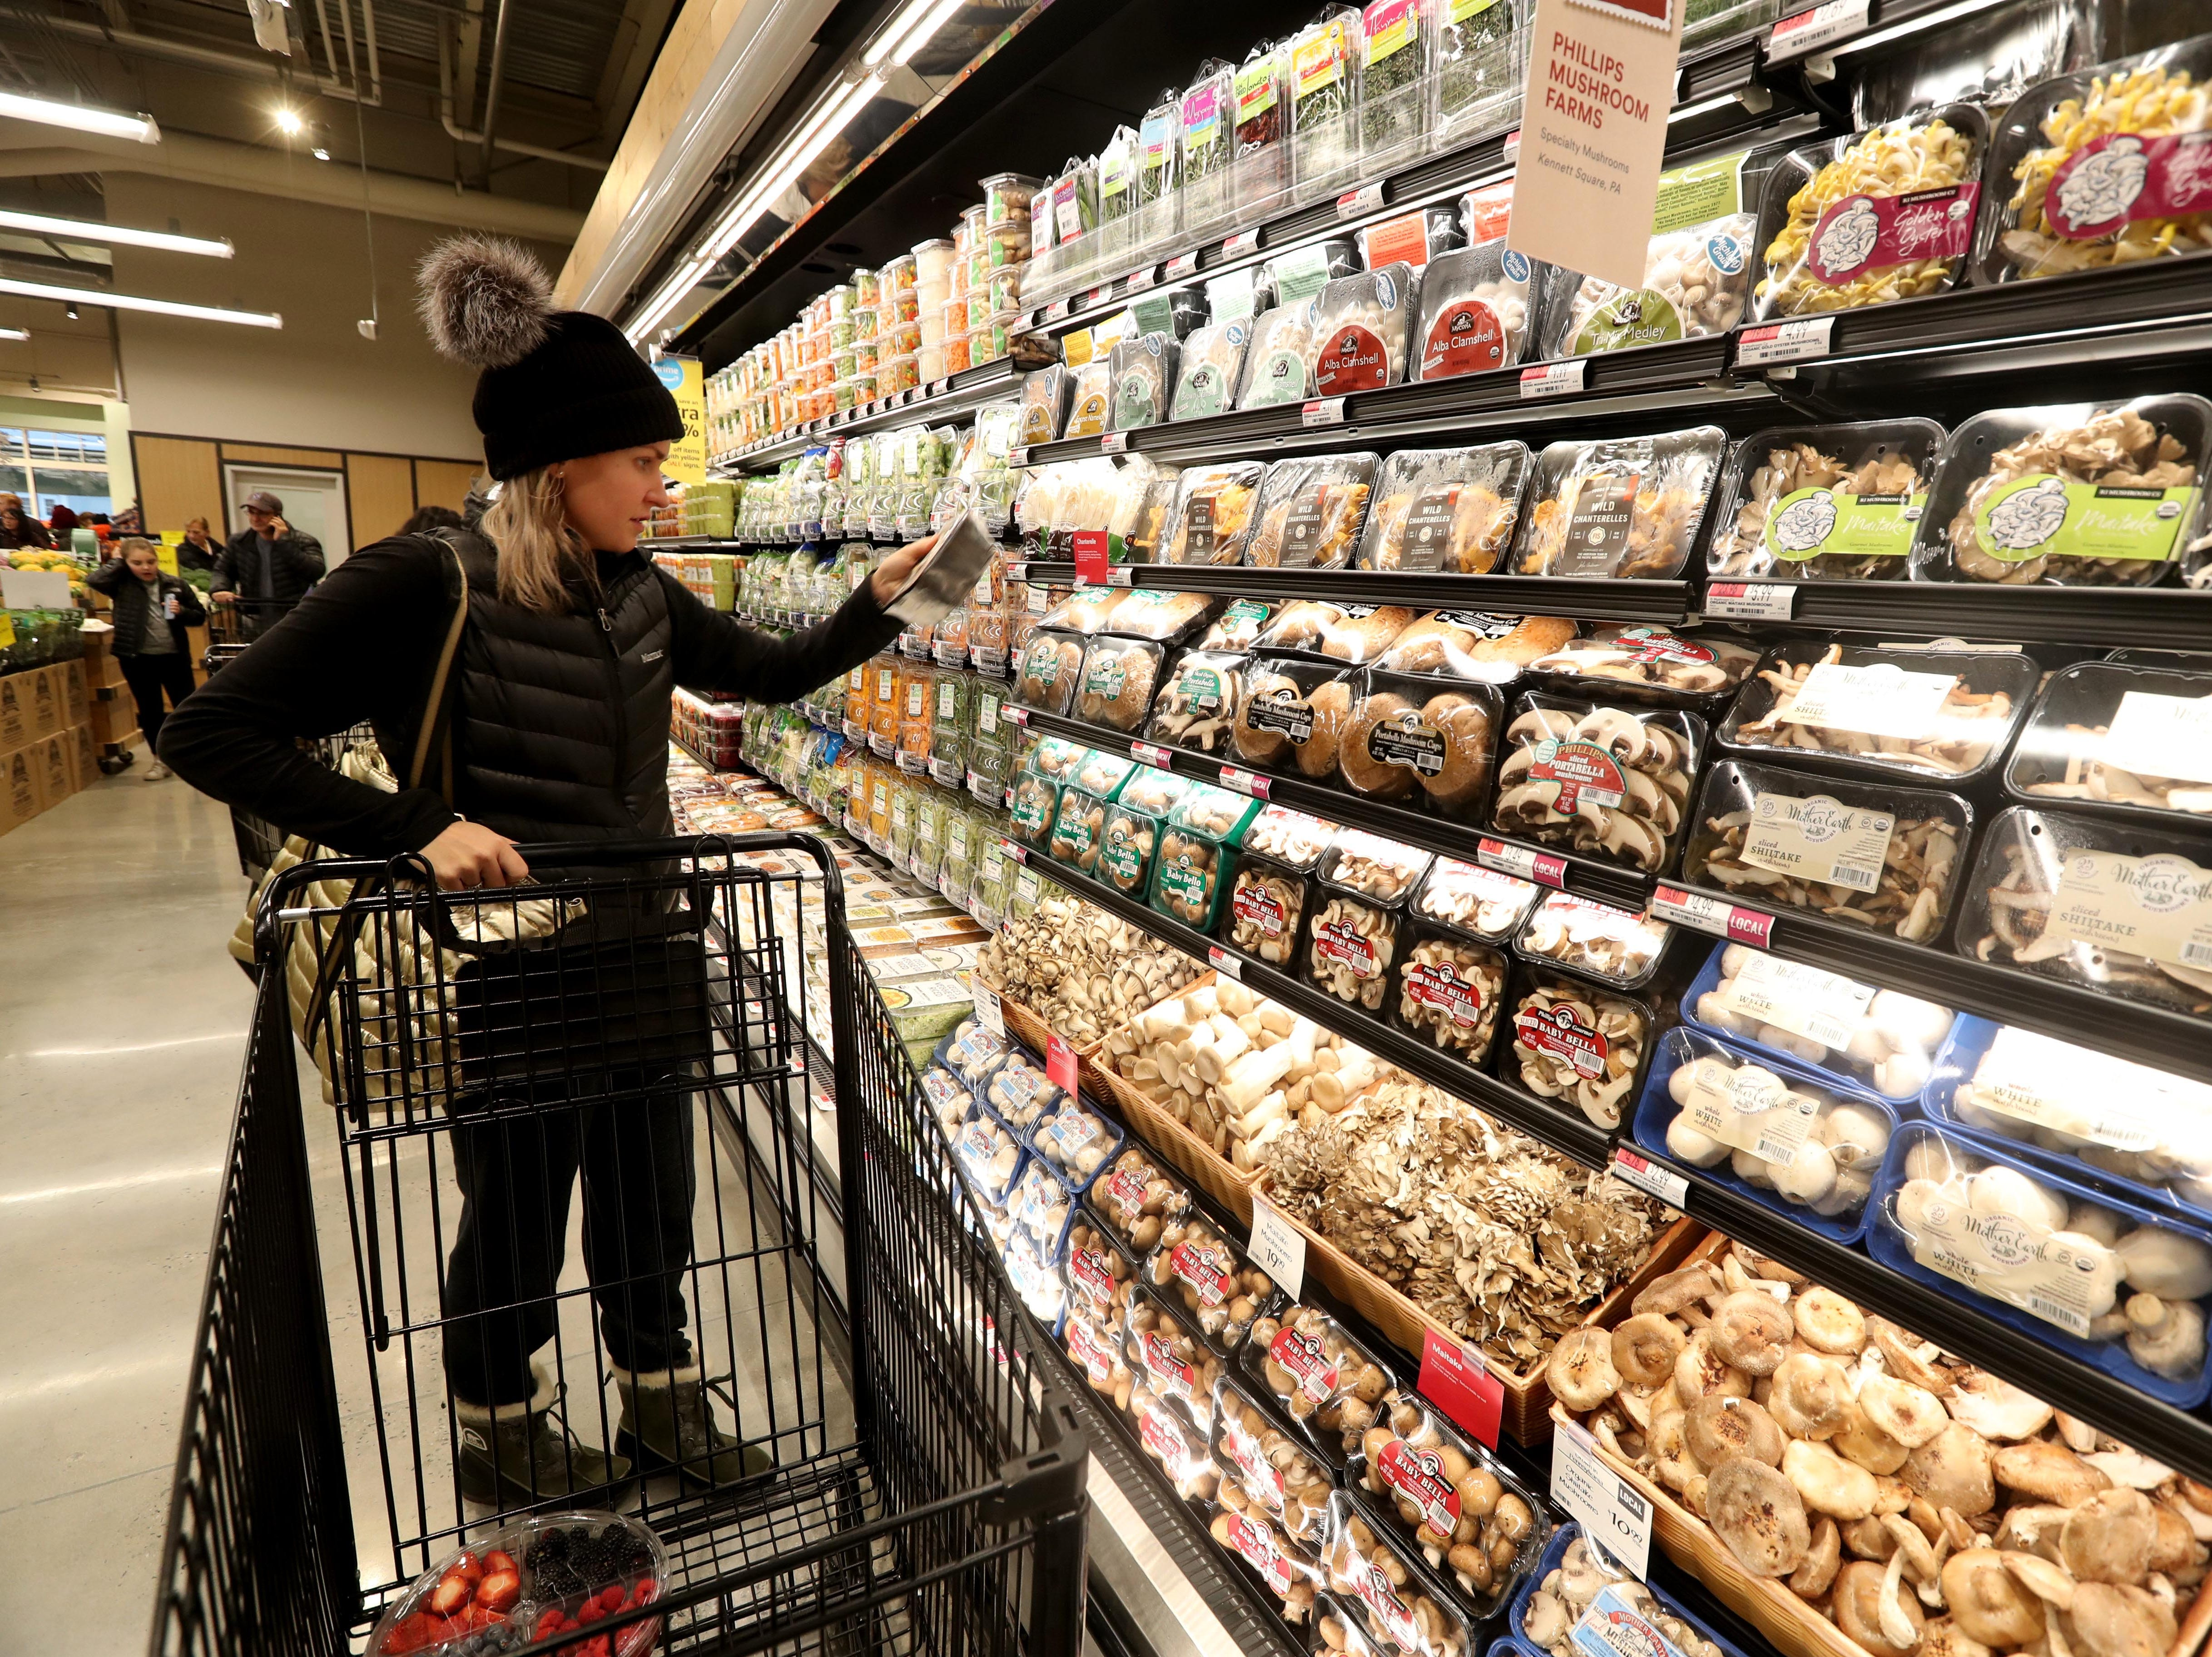 Kristine Rothman of Chappaqua shops in the produce section of the new Whole Foods in Chappaqua shortly after the grand opening of the supermarket at Chappaqua Crossing  Dec. 15, 2018. The 40,000 square foot store opened to shoppers on the site of the formers Readers Digest headquarters. The New Castle Town Board and Planning Board approved a temporary traffic plan for the Route 117-Roaring Brook Road intersection that allowed the store to open.